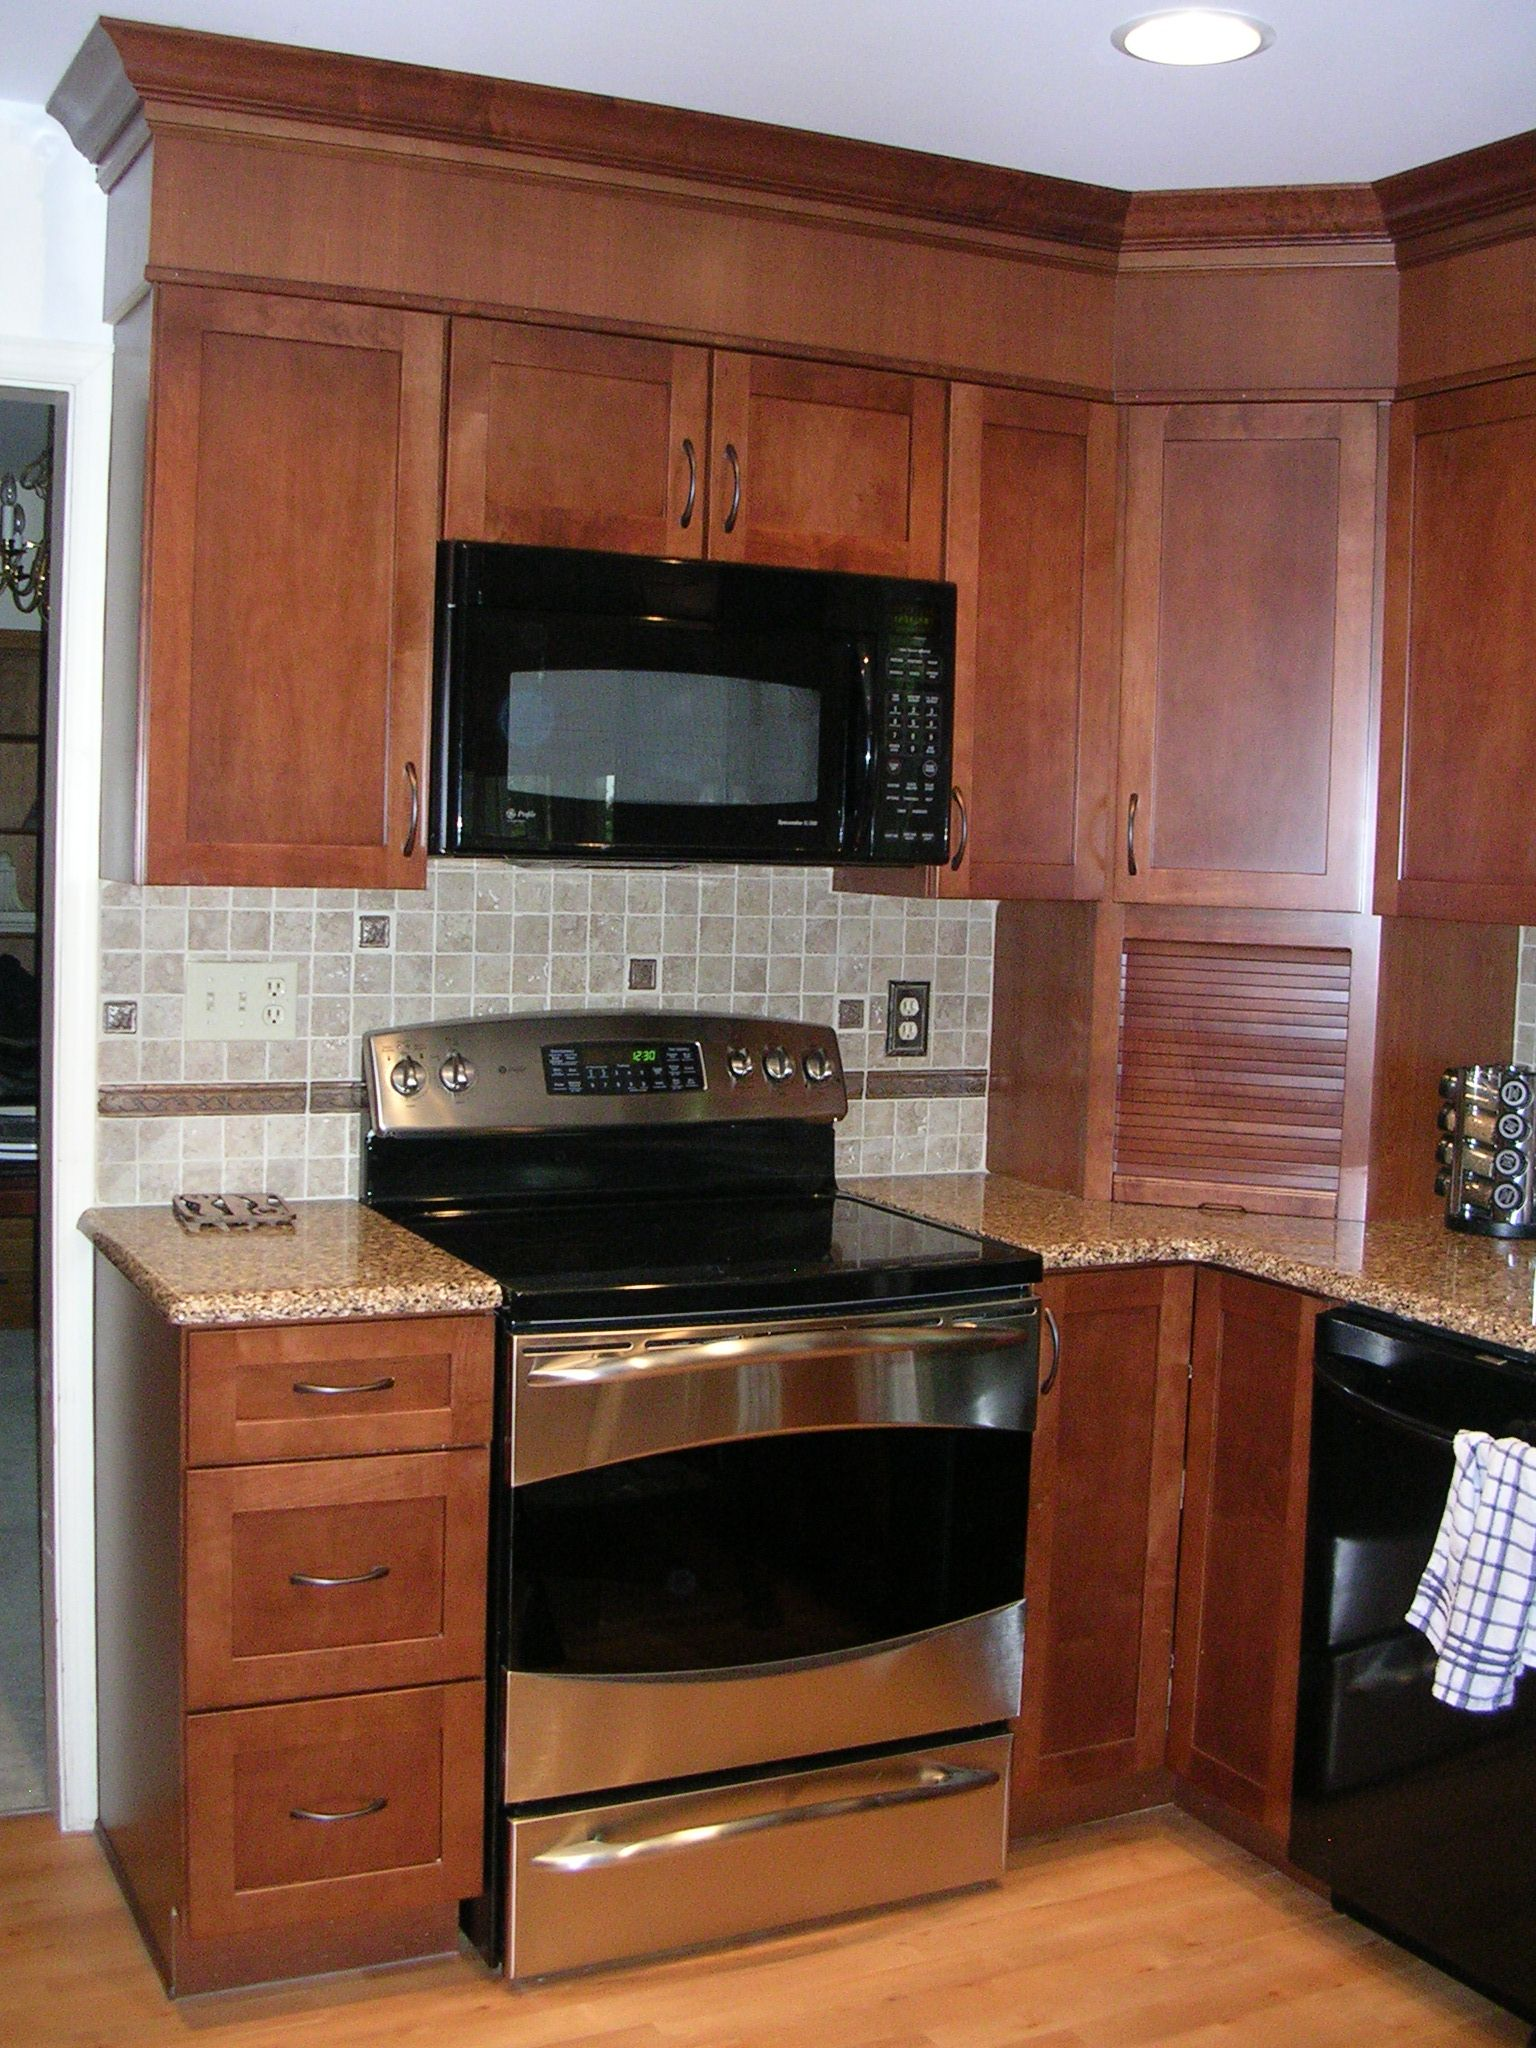 Kitchen Renovation Maple Ridge: Remodeled Kitchen With Warm Stained Maple Cabinets, Built